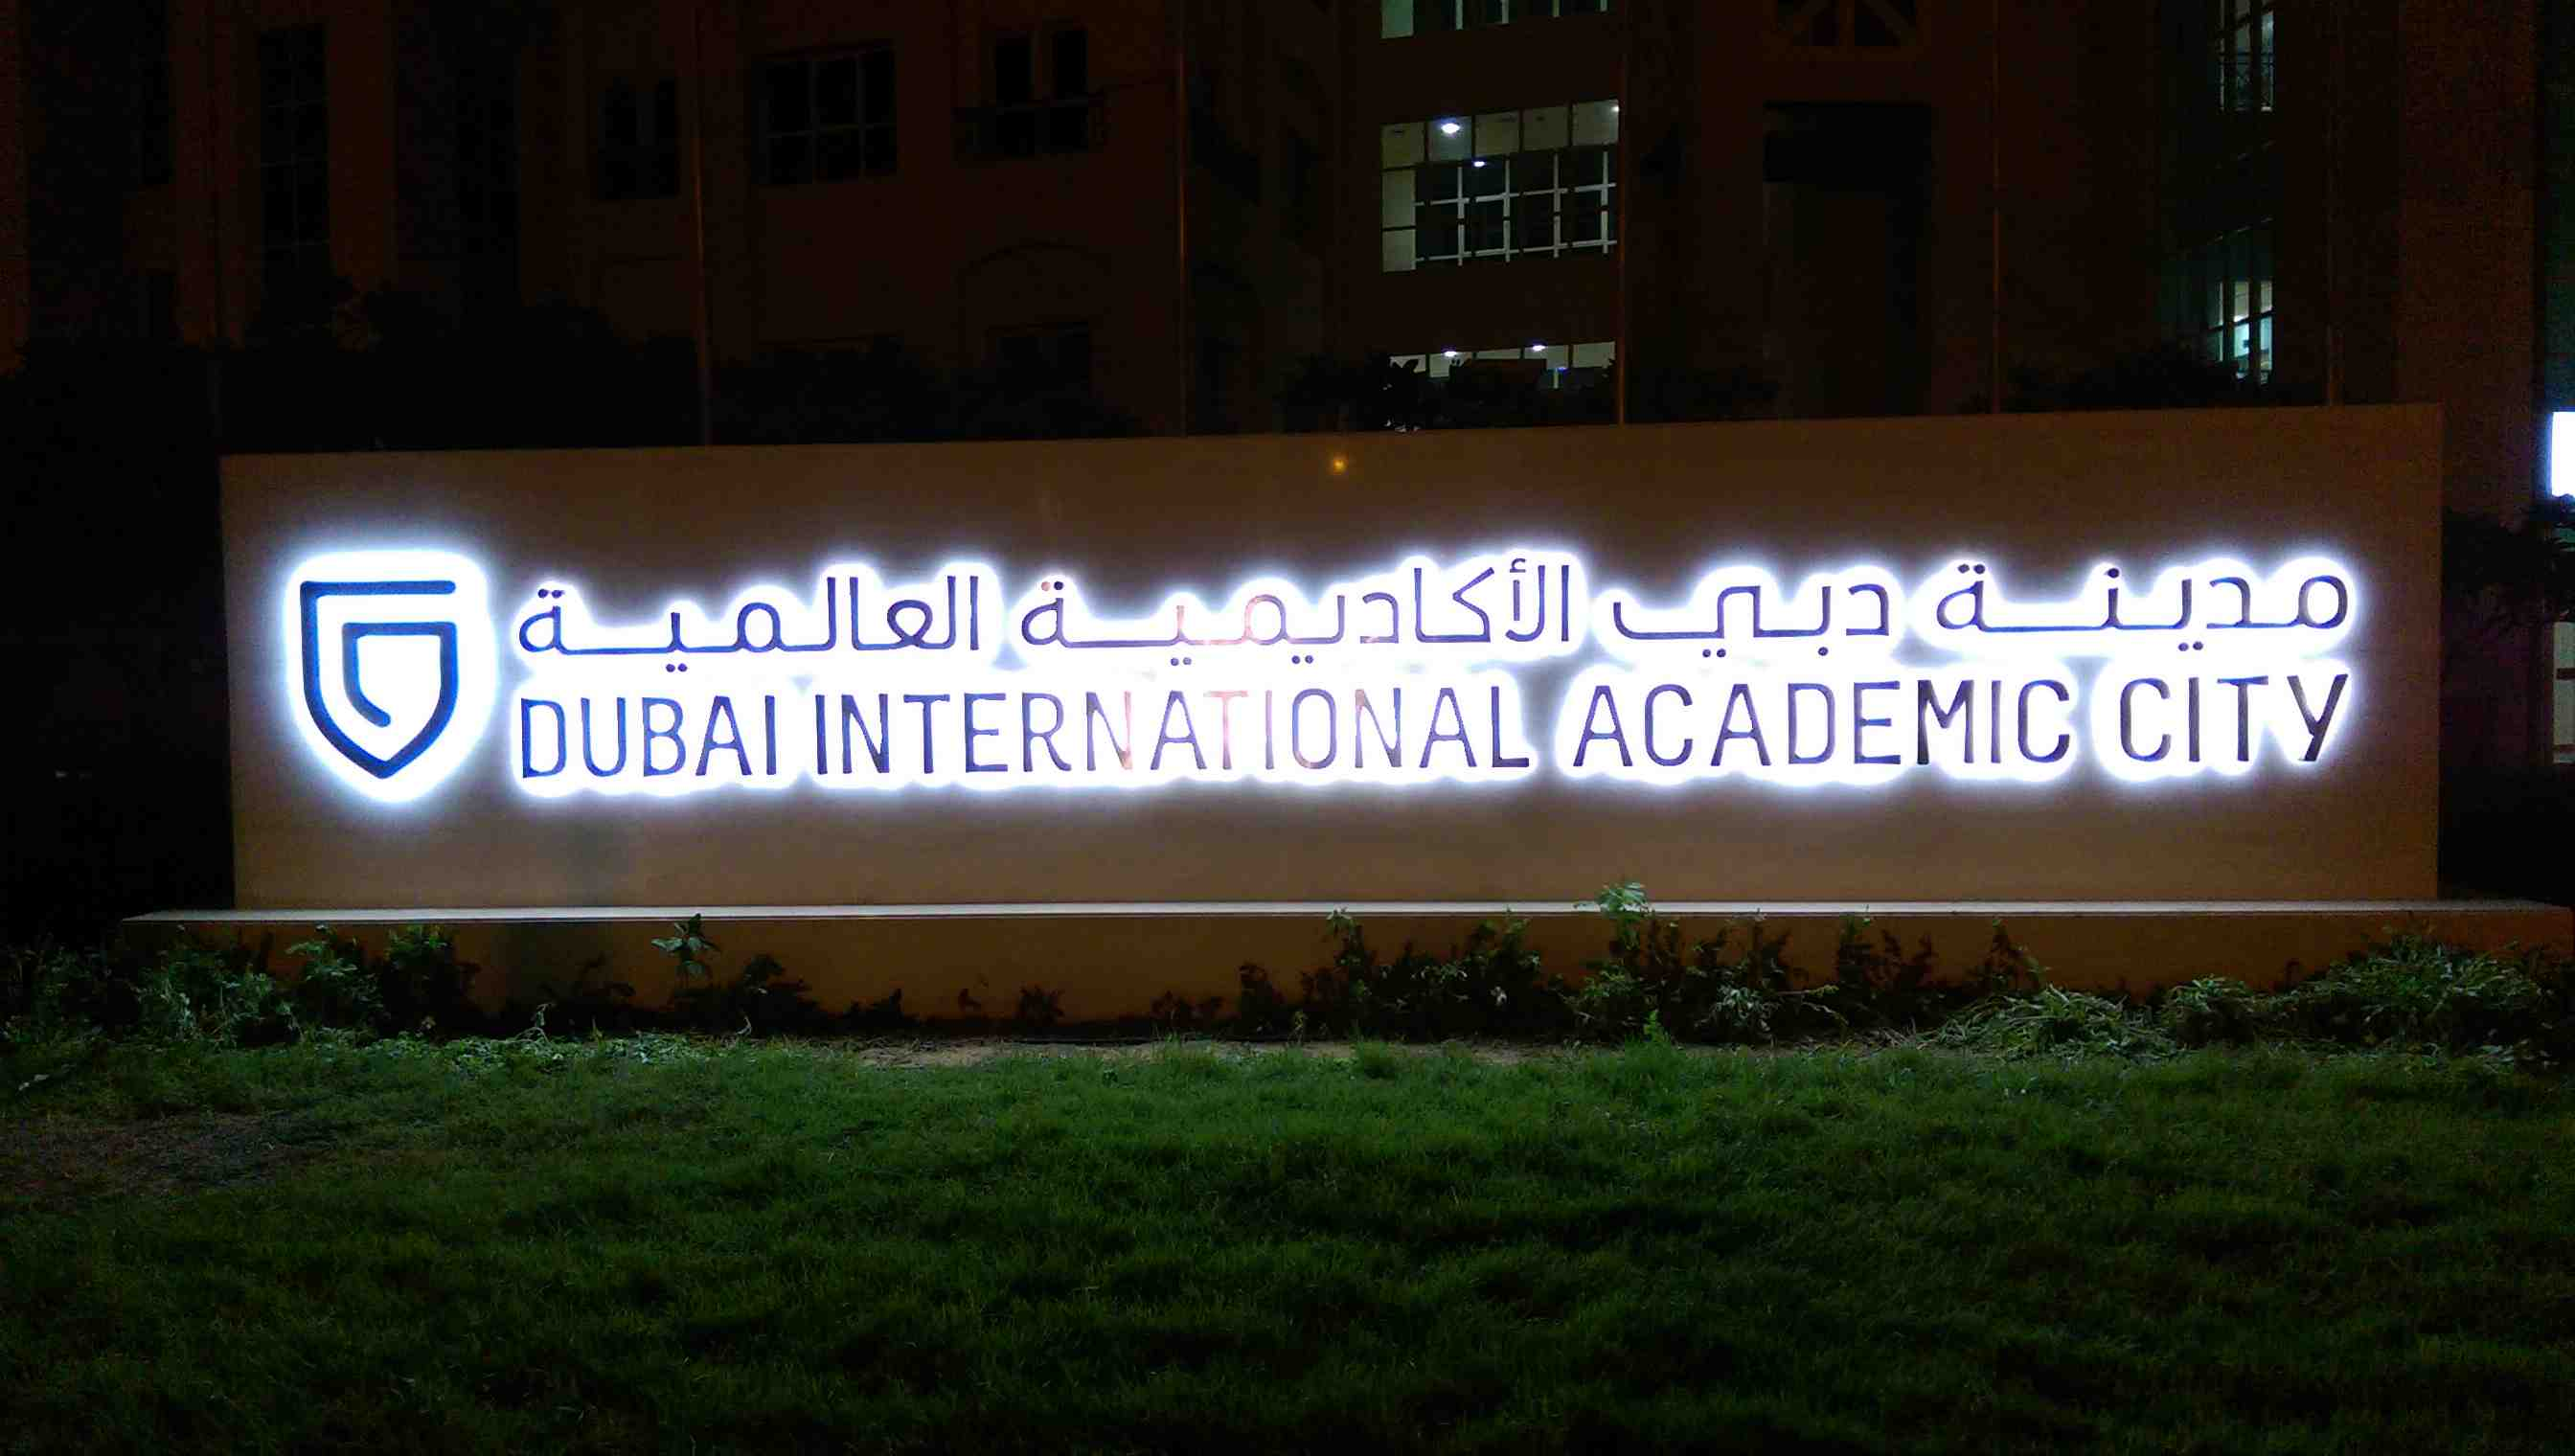 Fabricated Signage - DUBAI INTERNATIONAL ACADEMIC